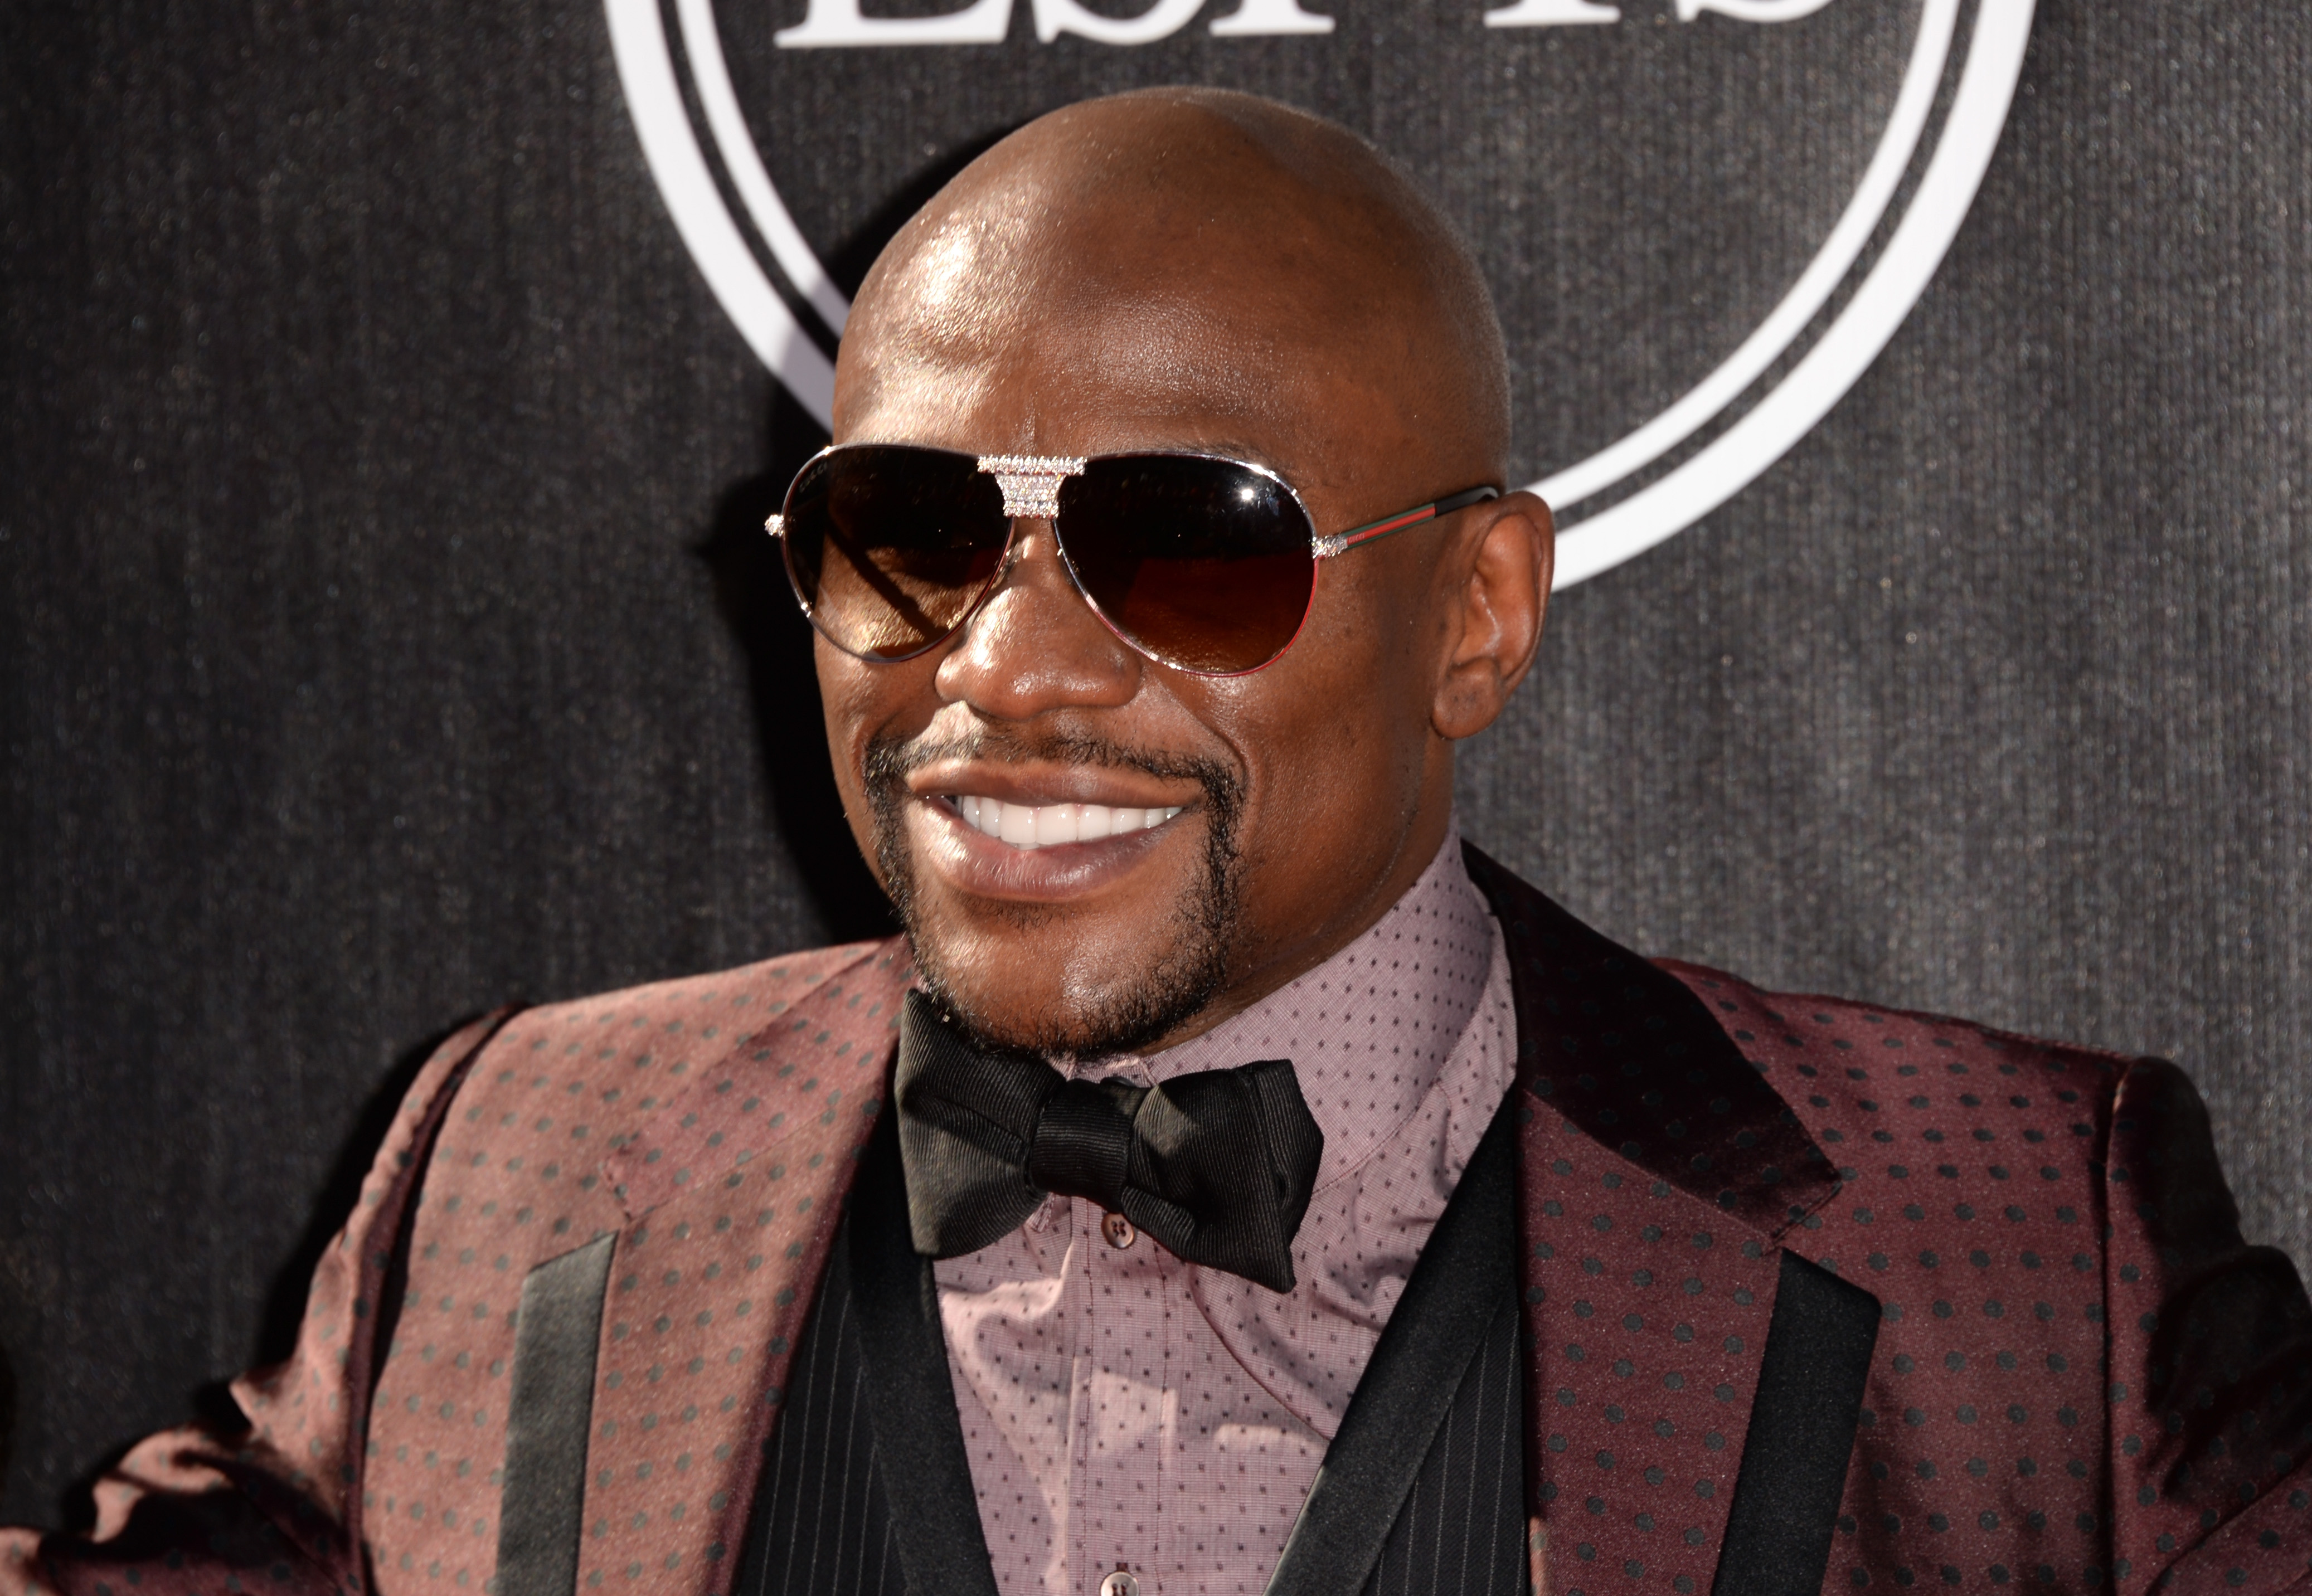 Floyd Mayweather (Photo by Jason Merritt/Getty Images)